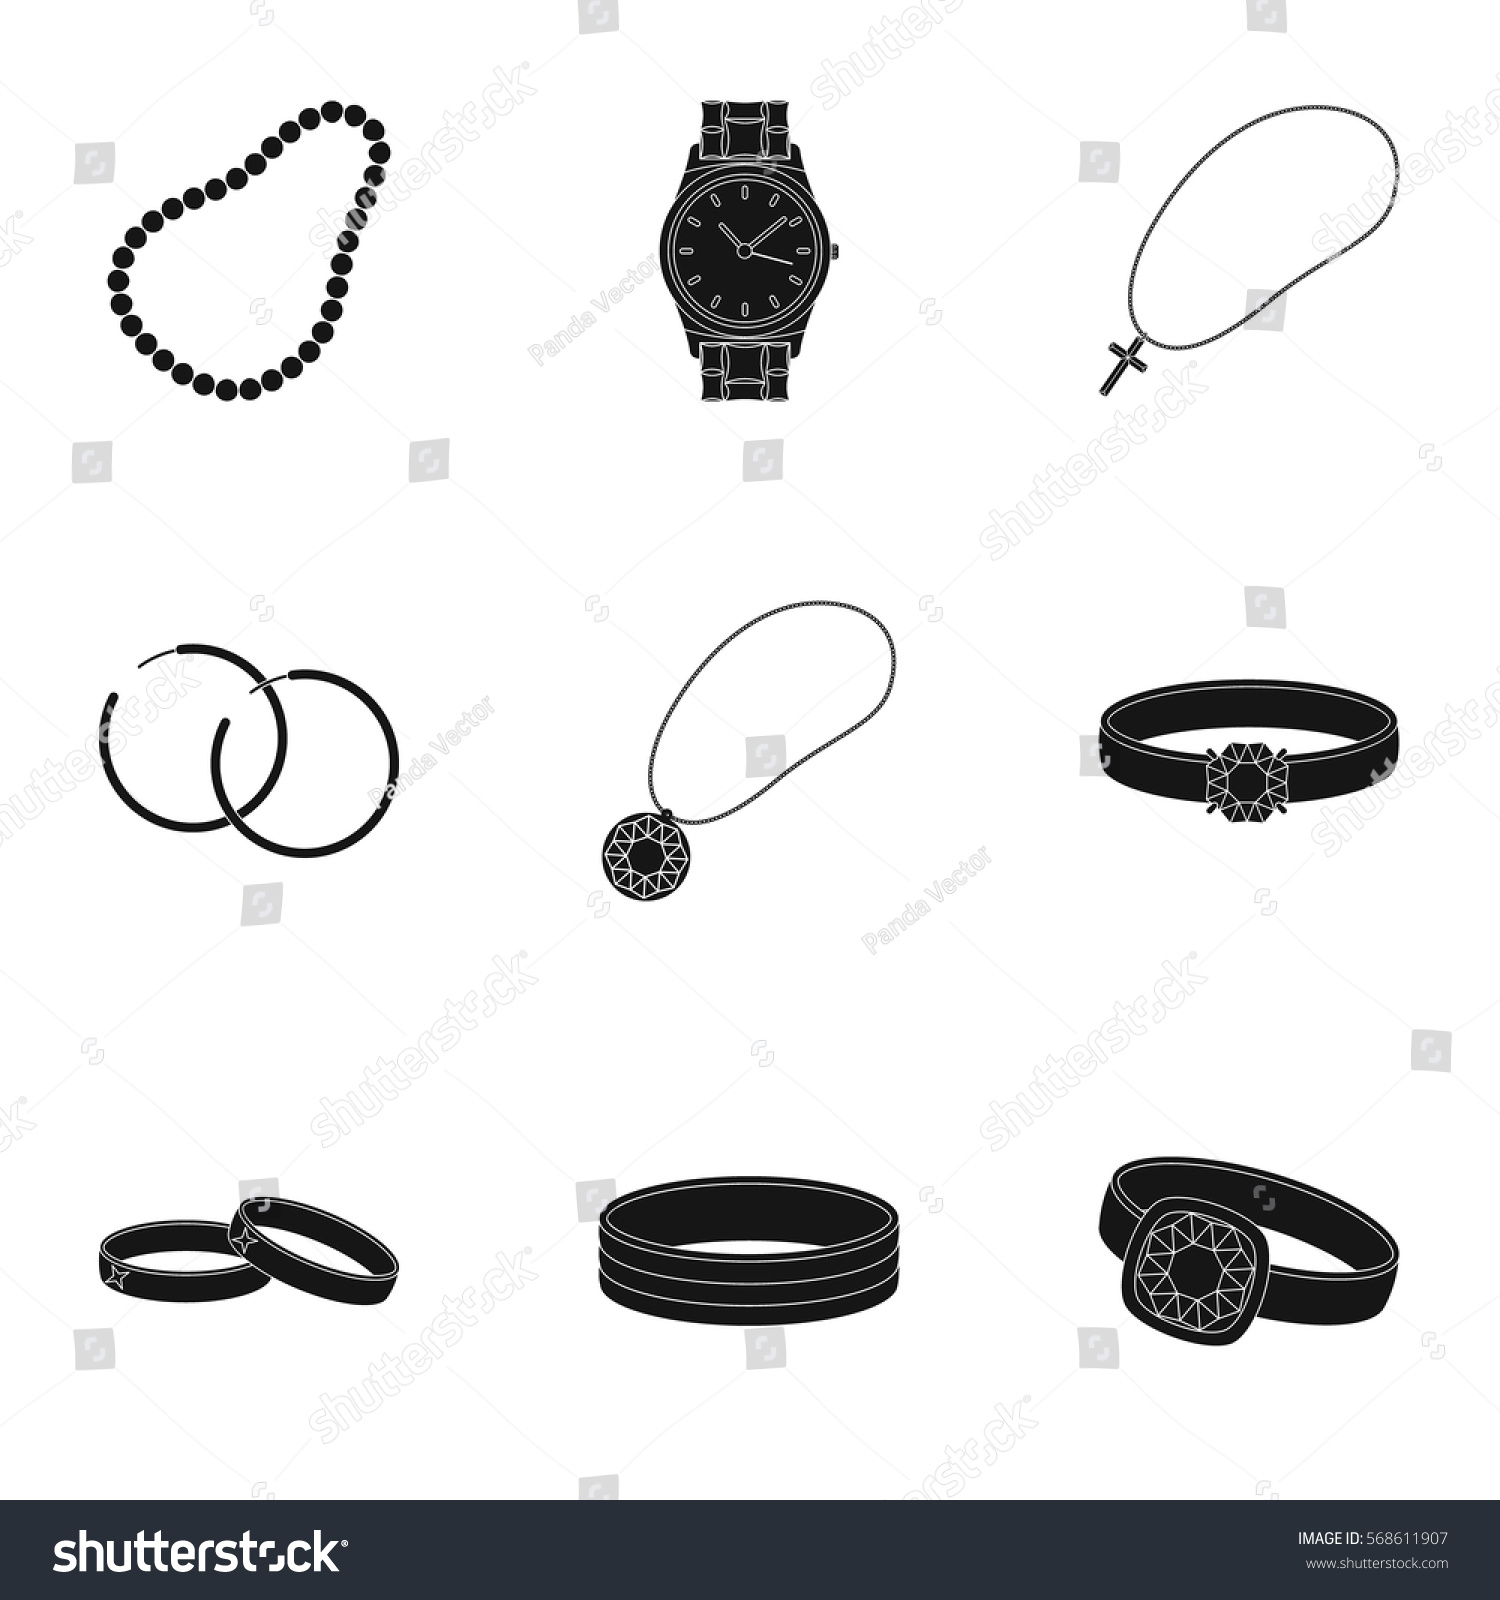 Jewelry and accessories set icons in black style Big collection of